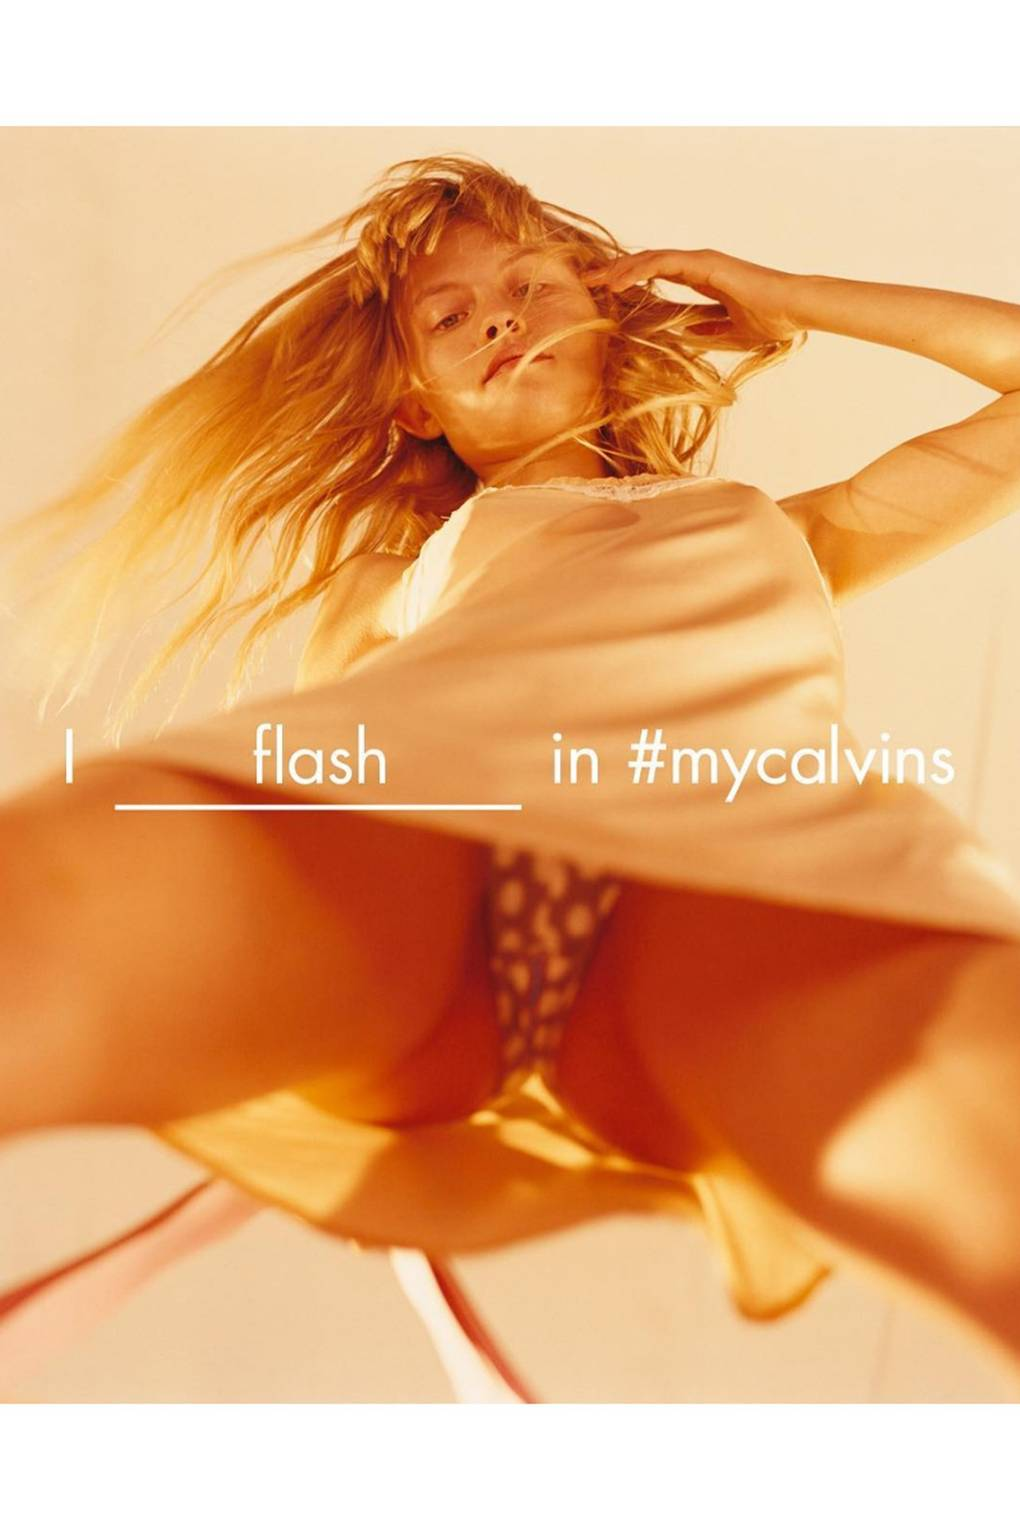 Image result for calvin klein 2016 campaign upskirt